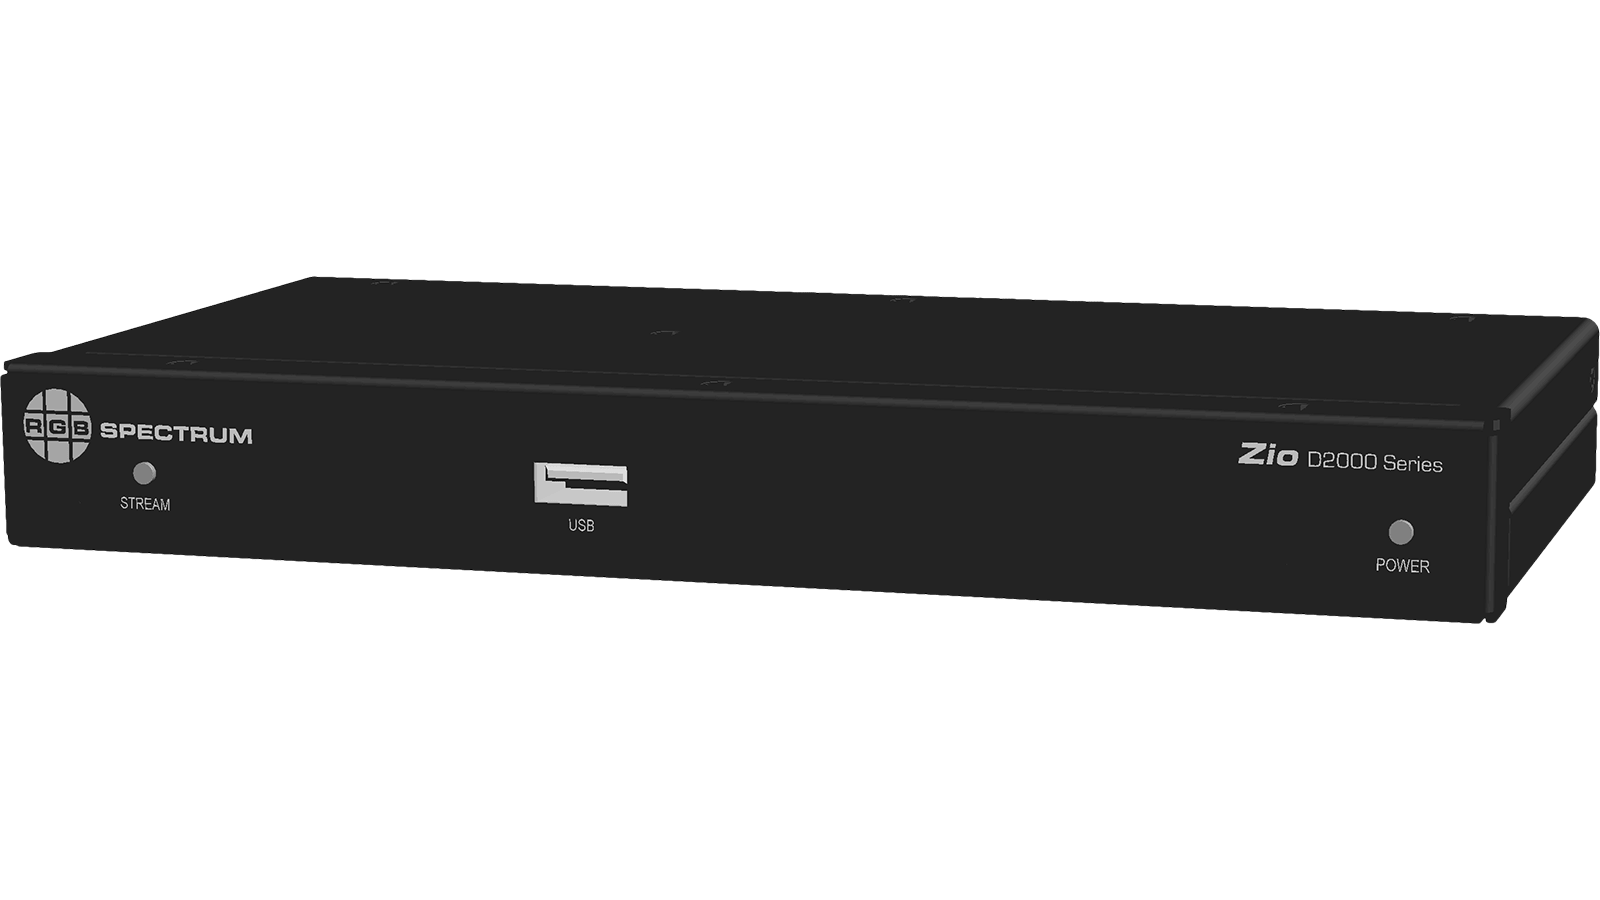 D2000 Series Multiviewer: Front Panel